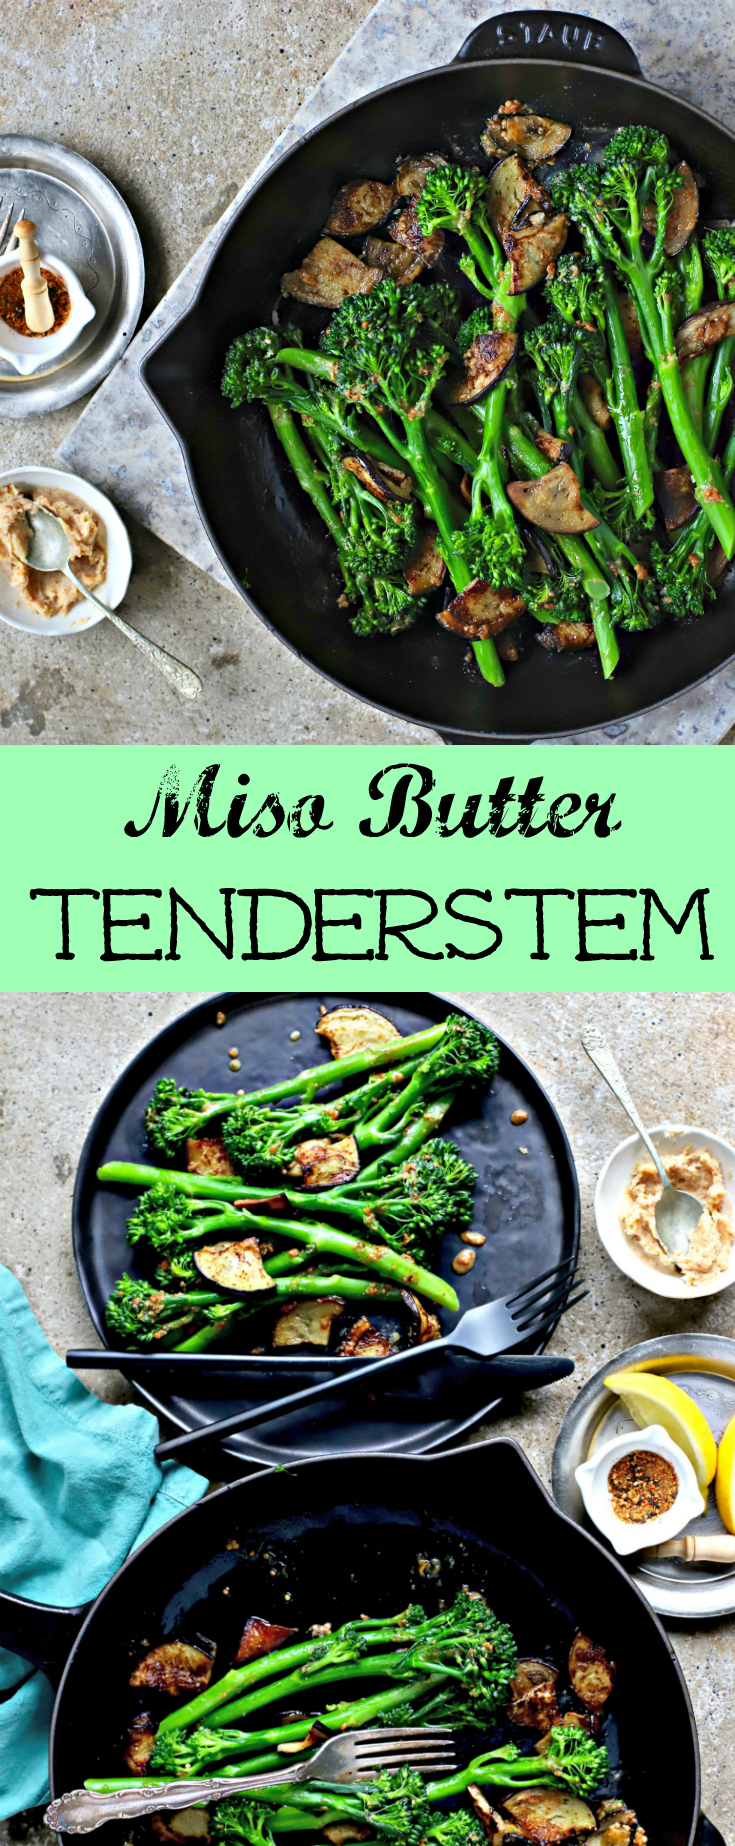 A simple but spectacular side dish featuring Tenderstem®, pan-fried aubergine and a Japanese spiced miso-butter. A quick and easy vegetable recipe to go with fish, tofu and any east Asian meal.